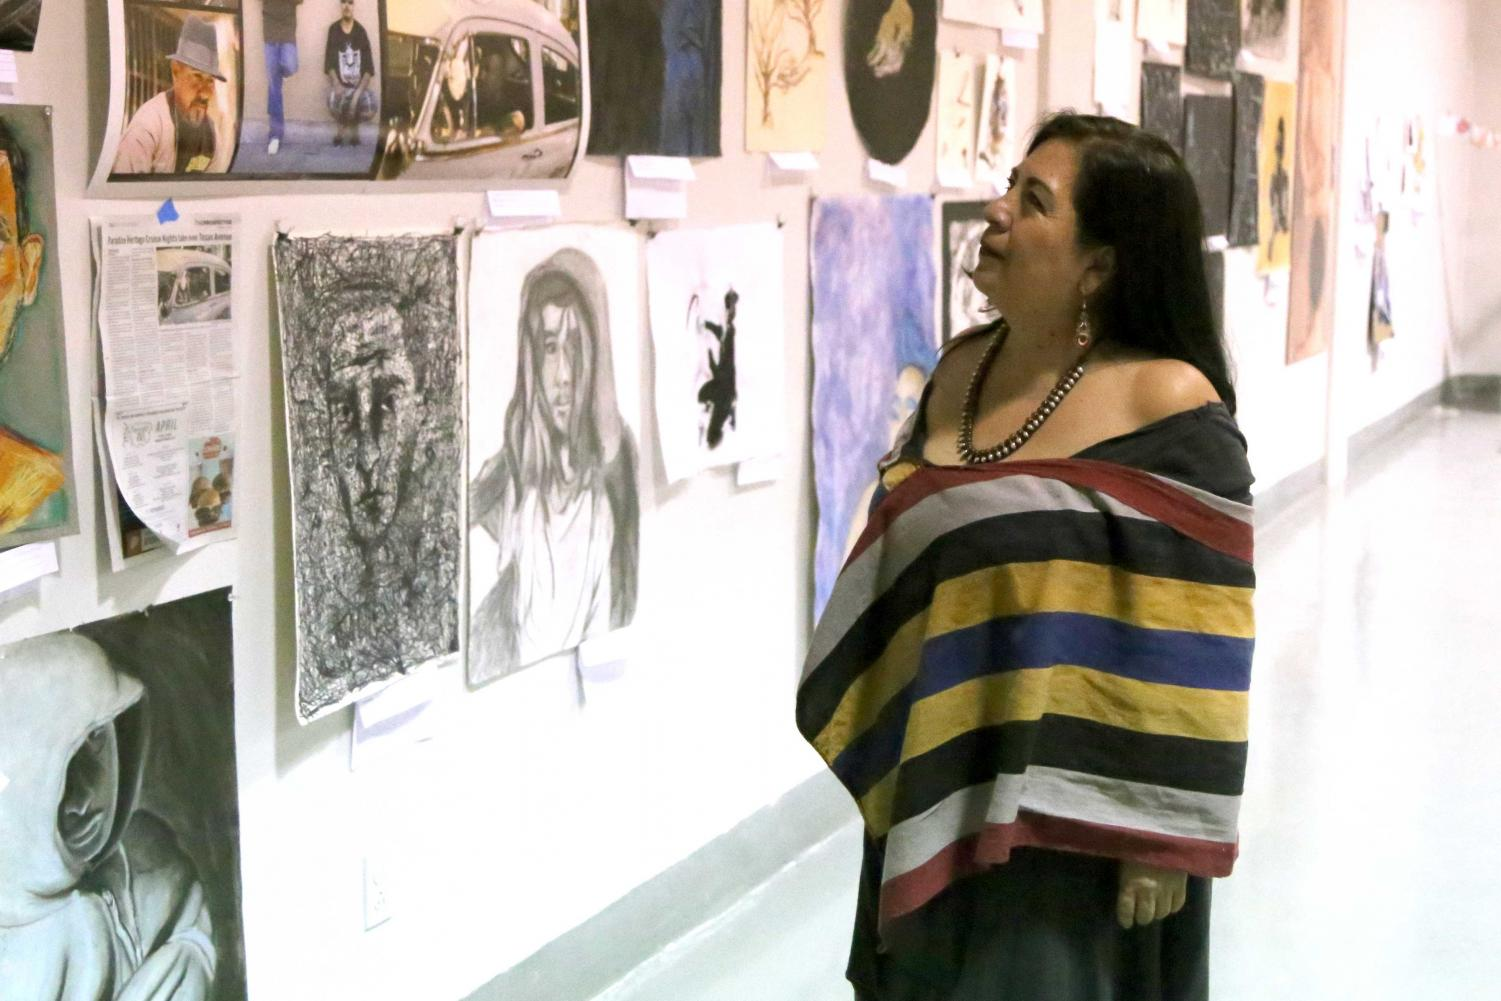 Betsabee Romero looks at the art work of students at the Rubin Center for the upcoming annual Juried Student Art Exhibition.